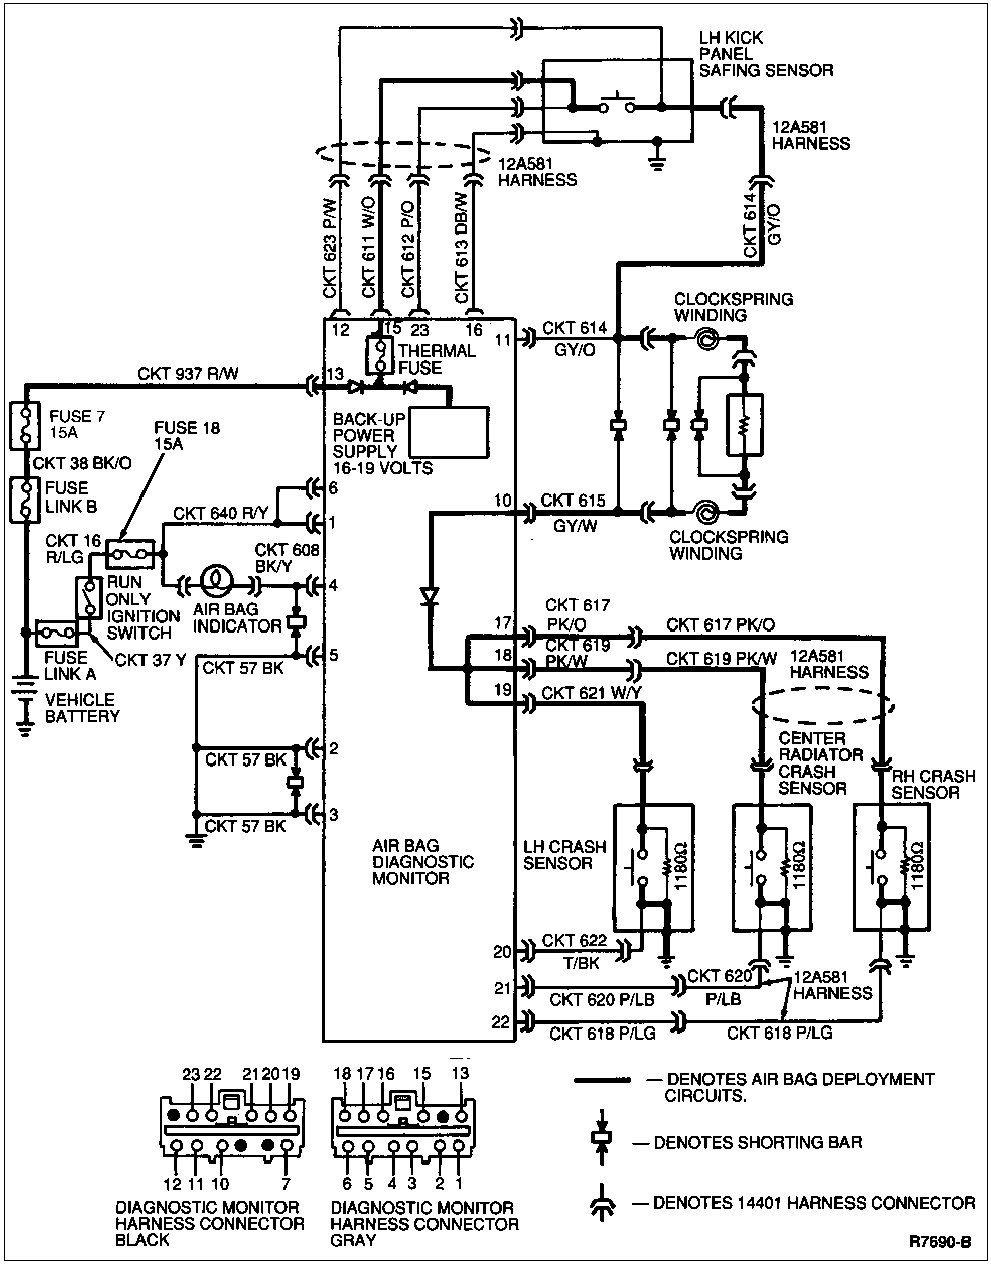 hight resolution of airbag wiring diagram wiring diagram today renault airbag wiring diagram air bag wiring diagram